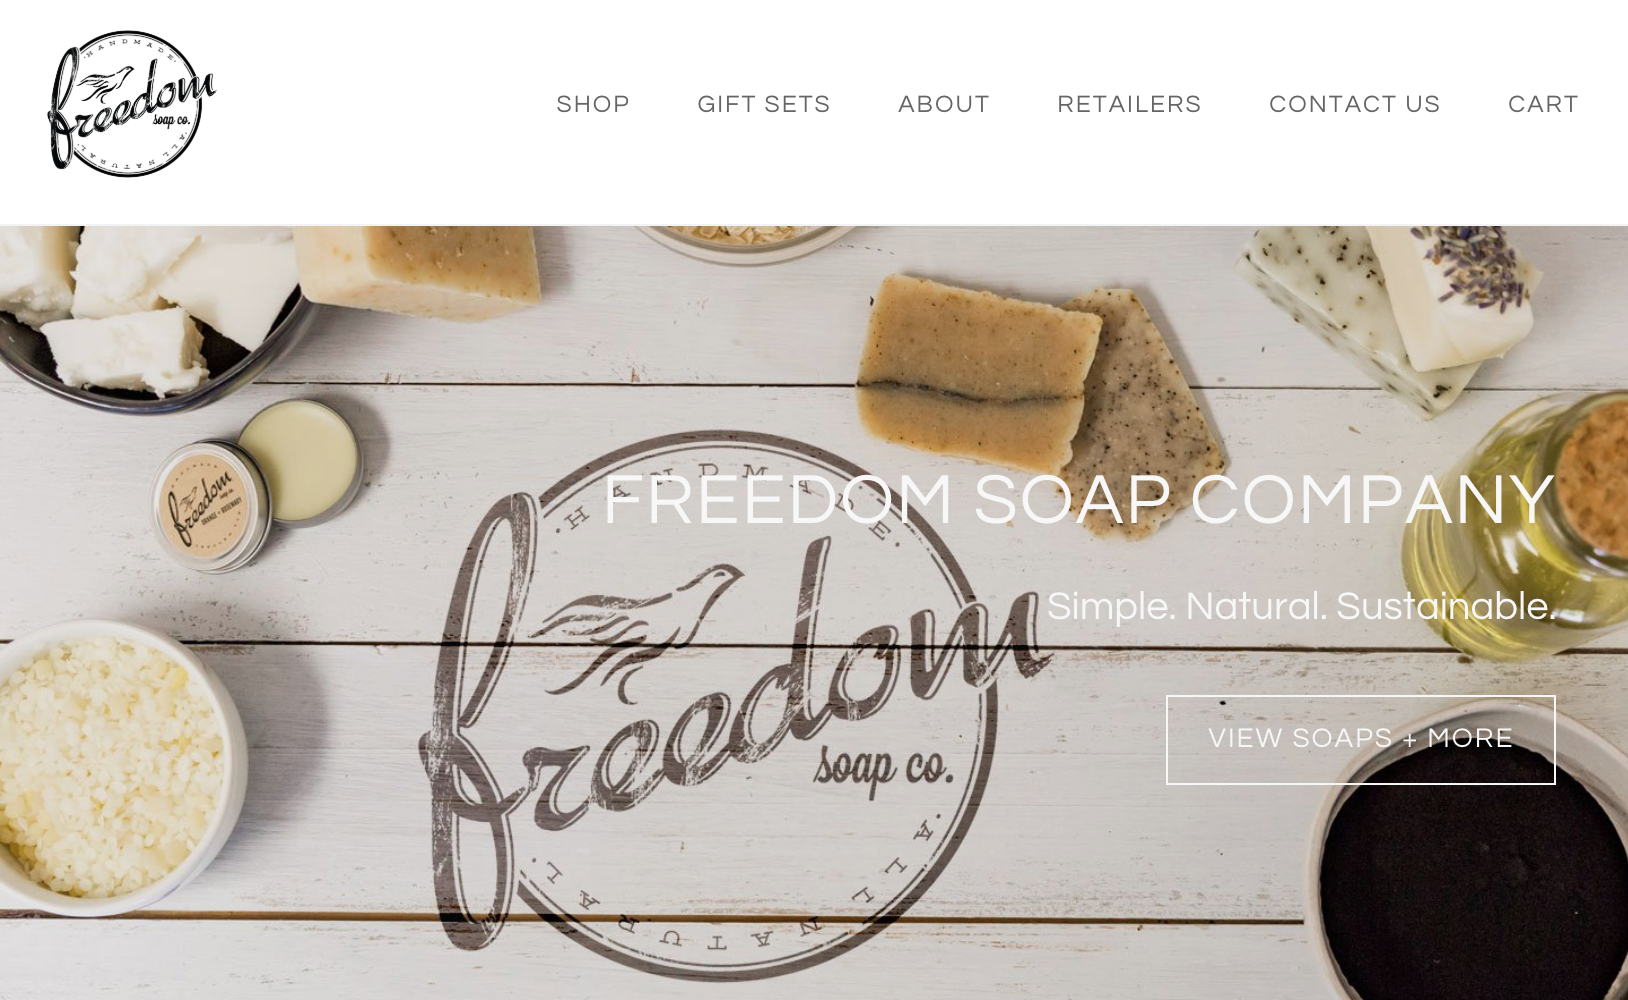 Branding photography created for Freedom Soaps to showcase their all natural soap and cleansing products. This image was used for their website hero image created by Zeekee, a Bell Media Company.